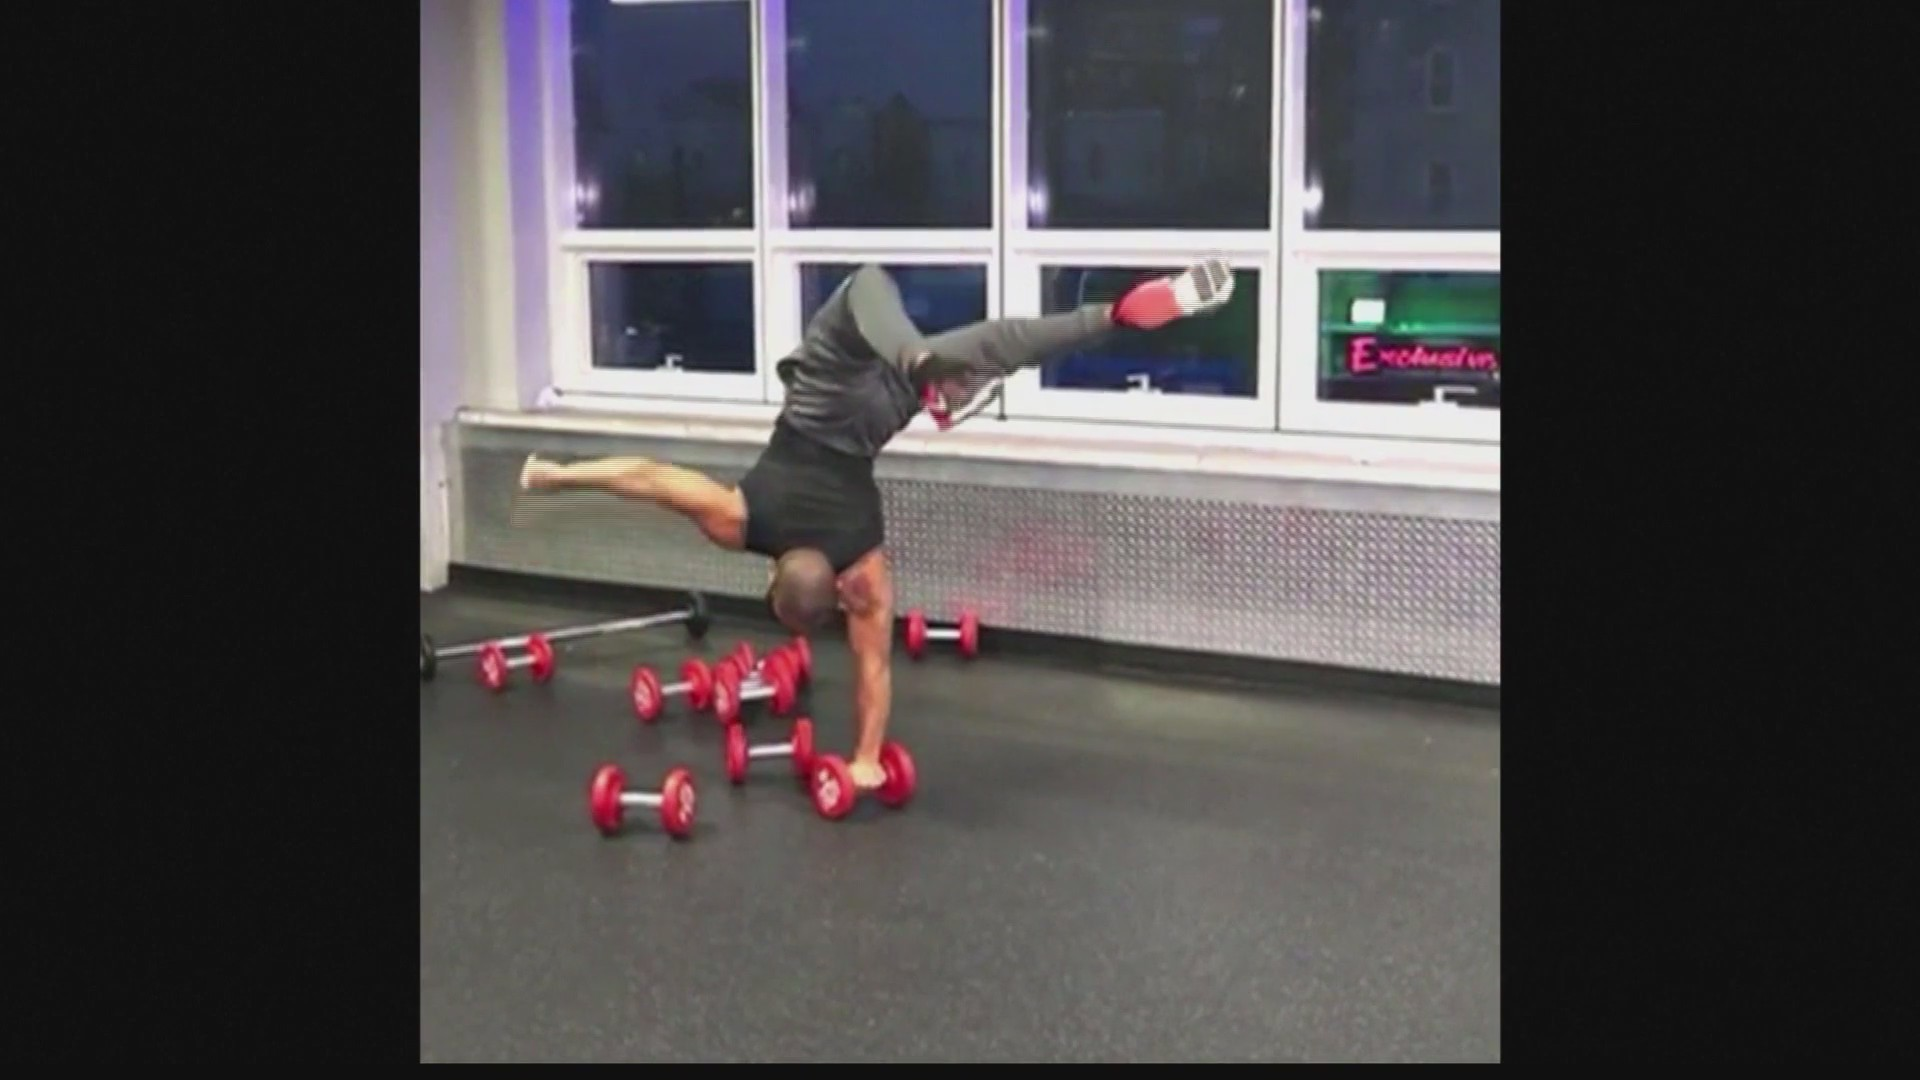 Athlete shows off talent